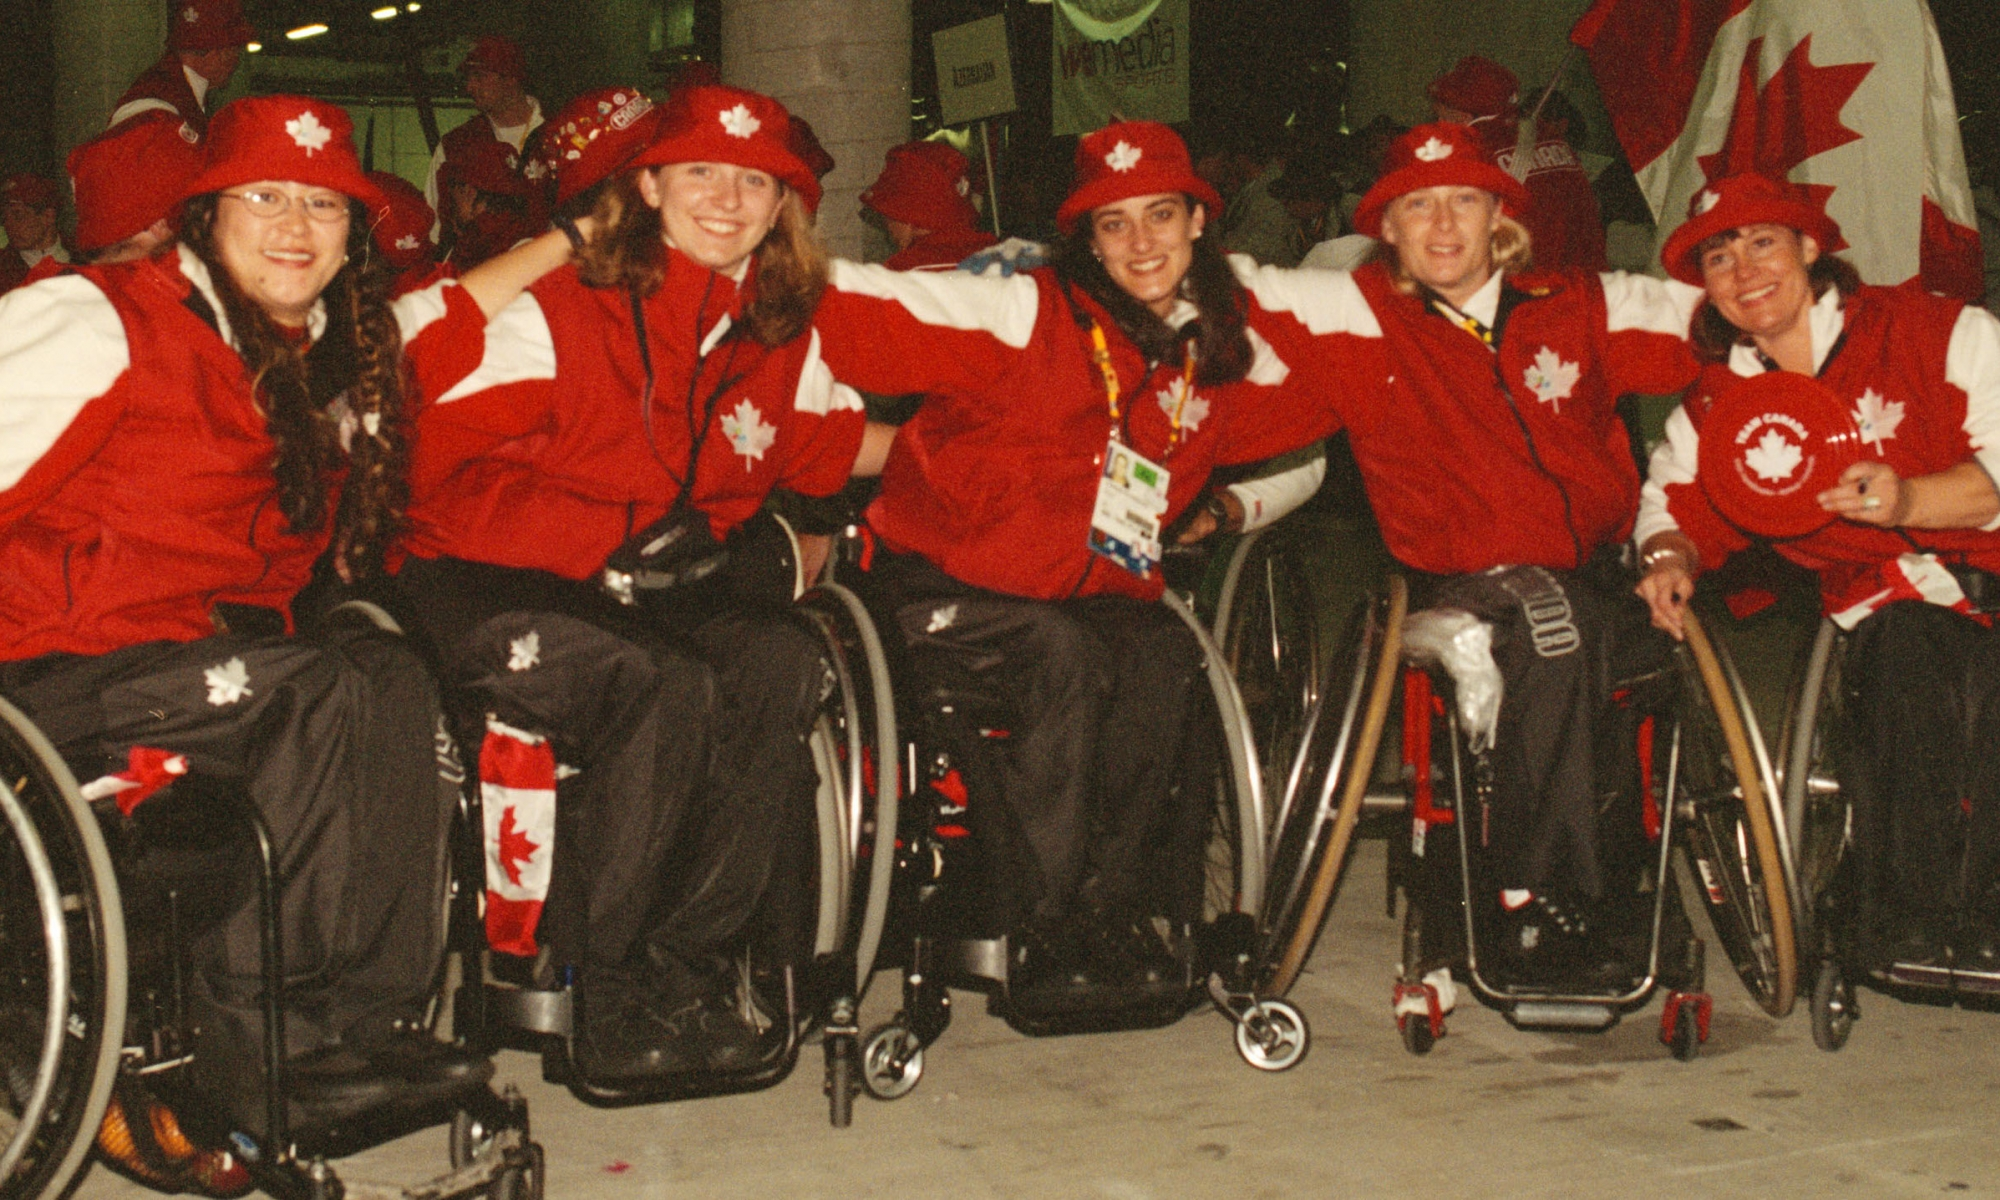 Athletes in wheelchairs and Canada gear from the Sydney 2000 Paralympic Games